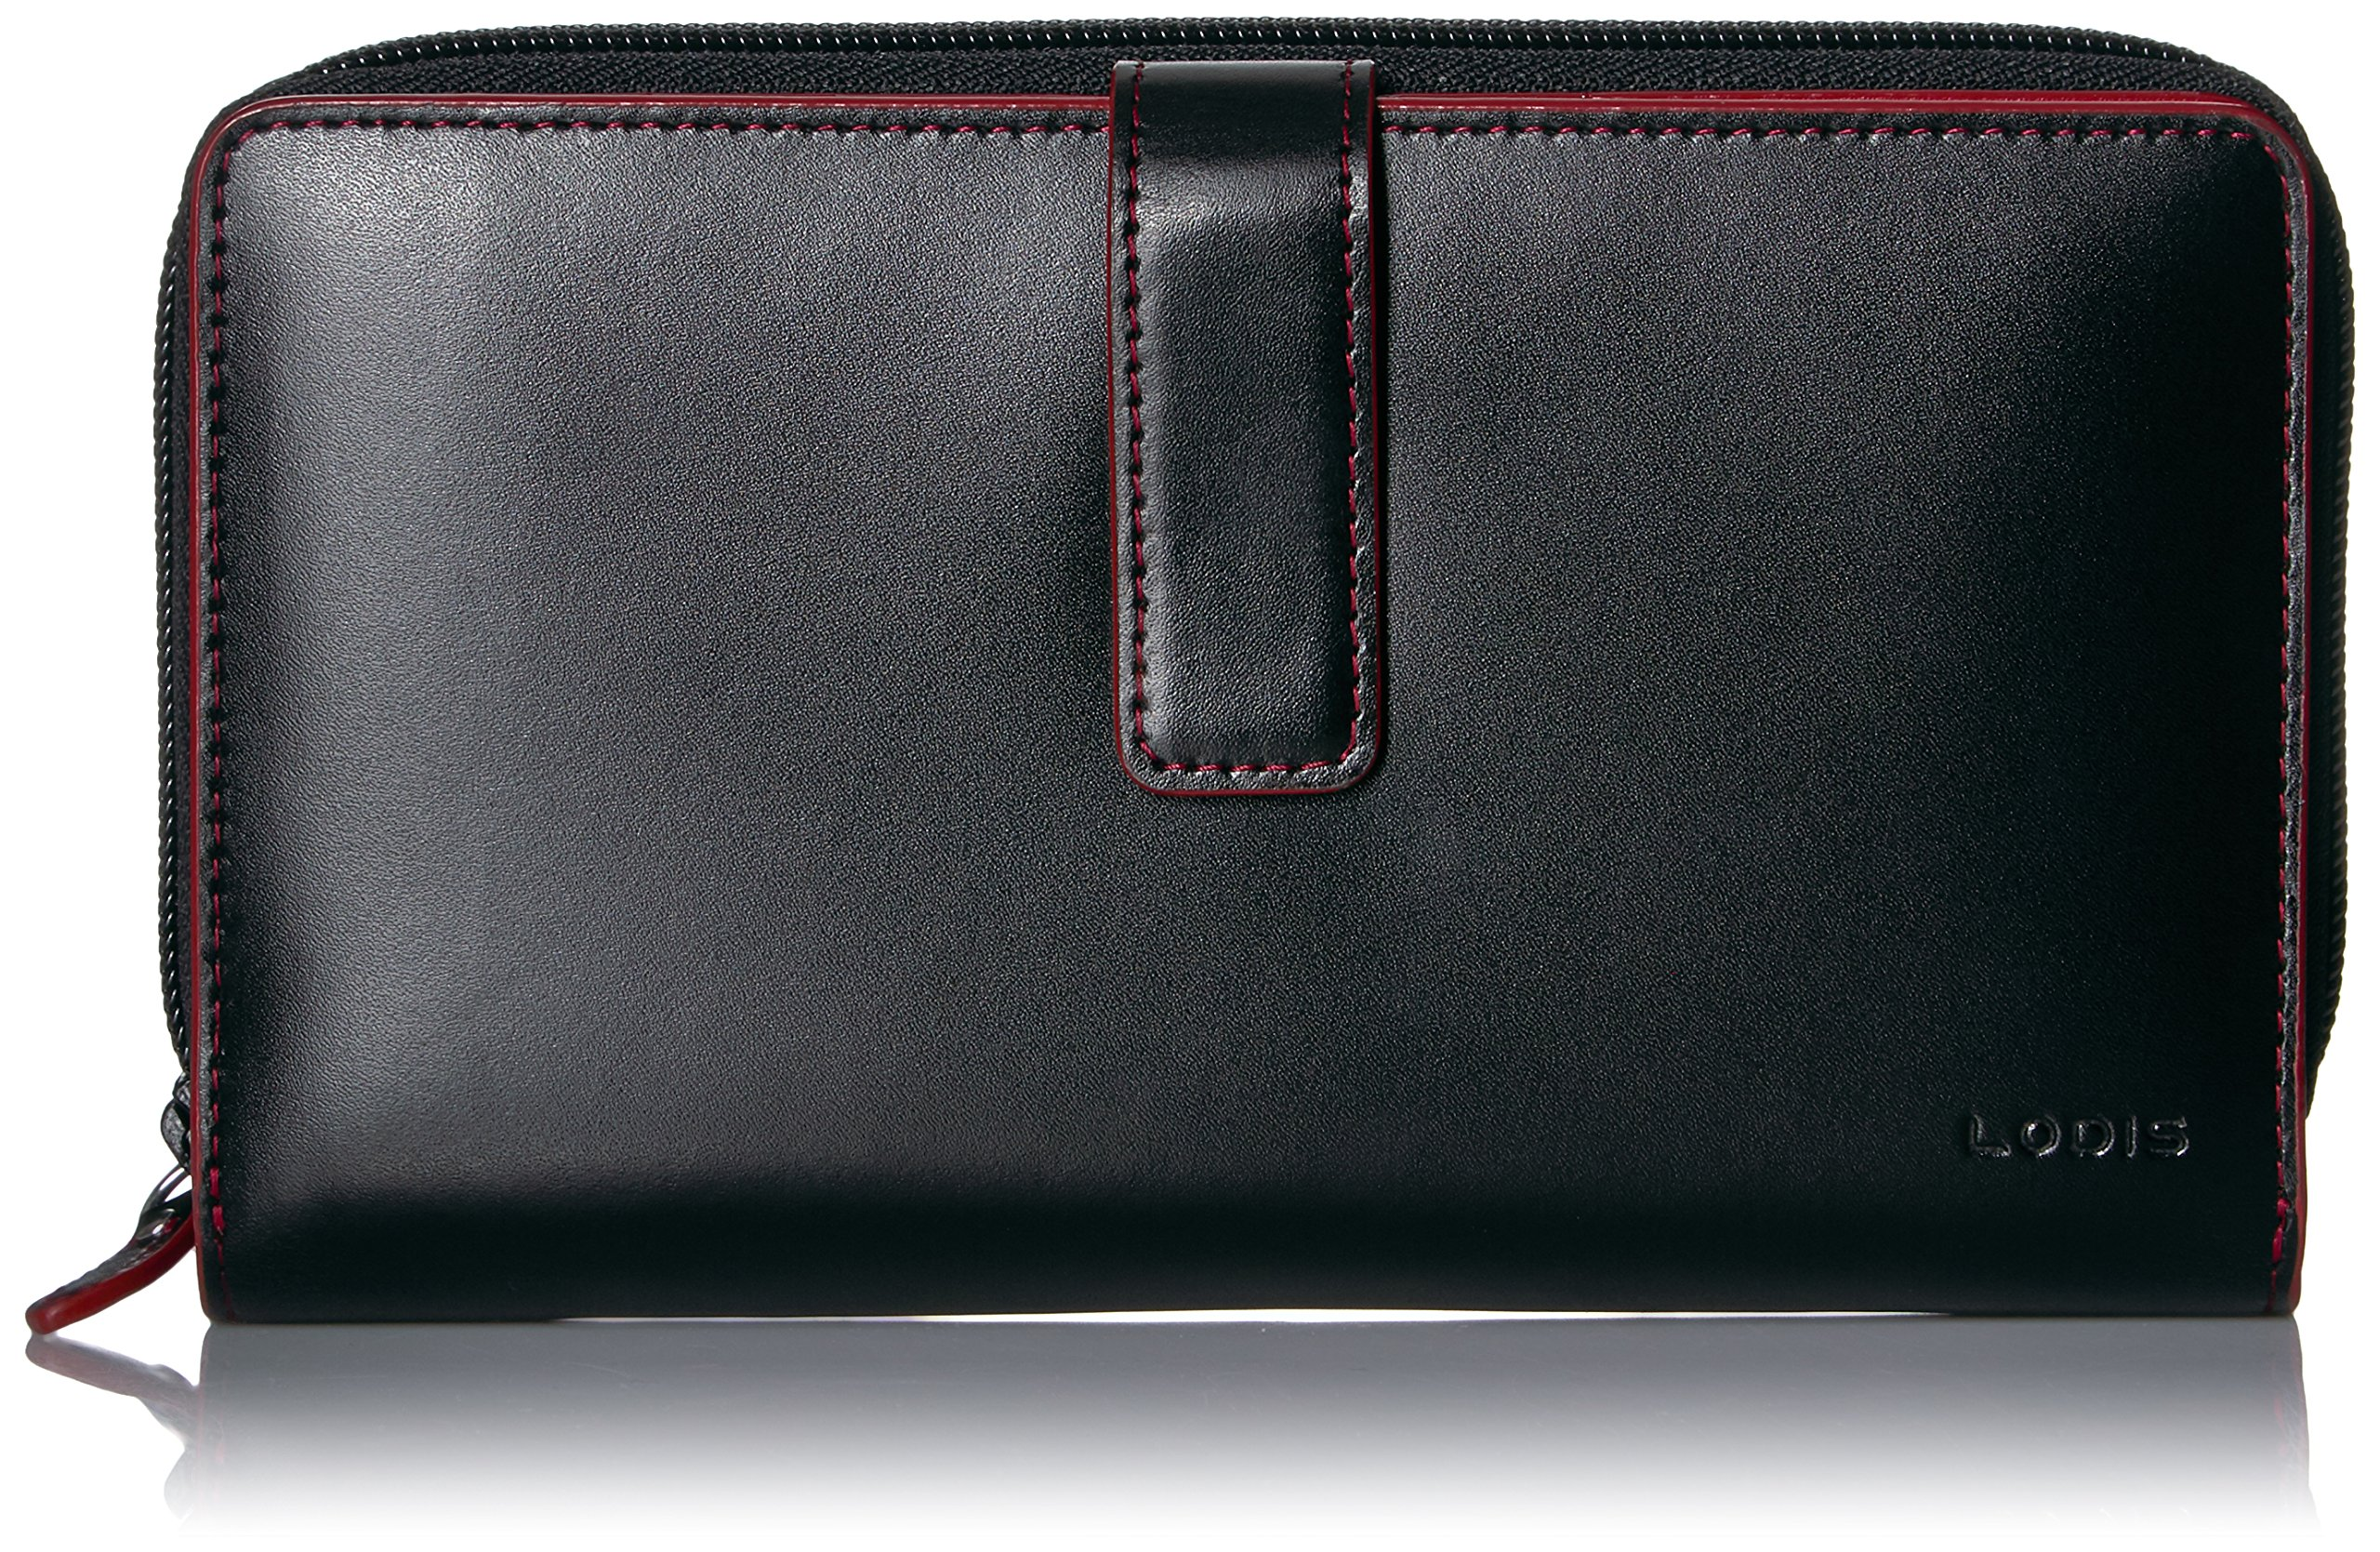 Lodis Women's Audrey Rfid Suv Deluxe Wallet W/ Removable Checkbook Cover